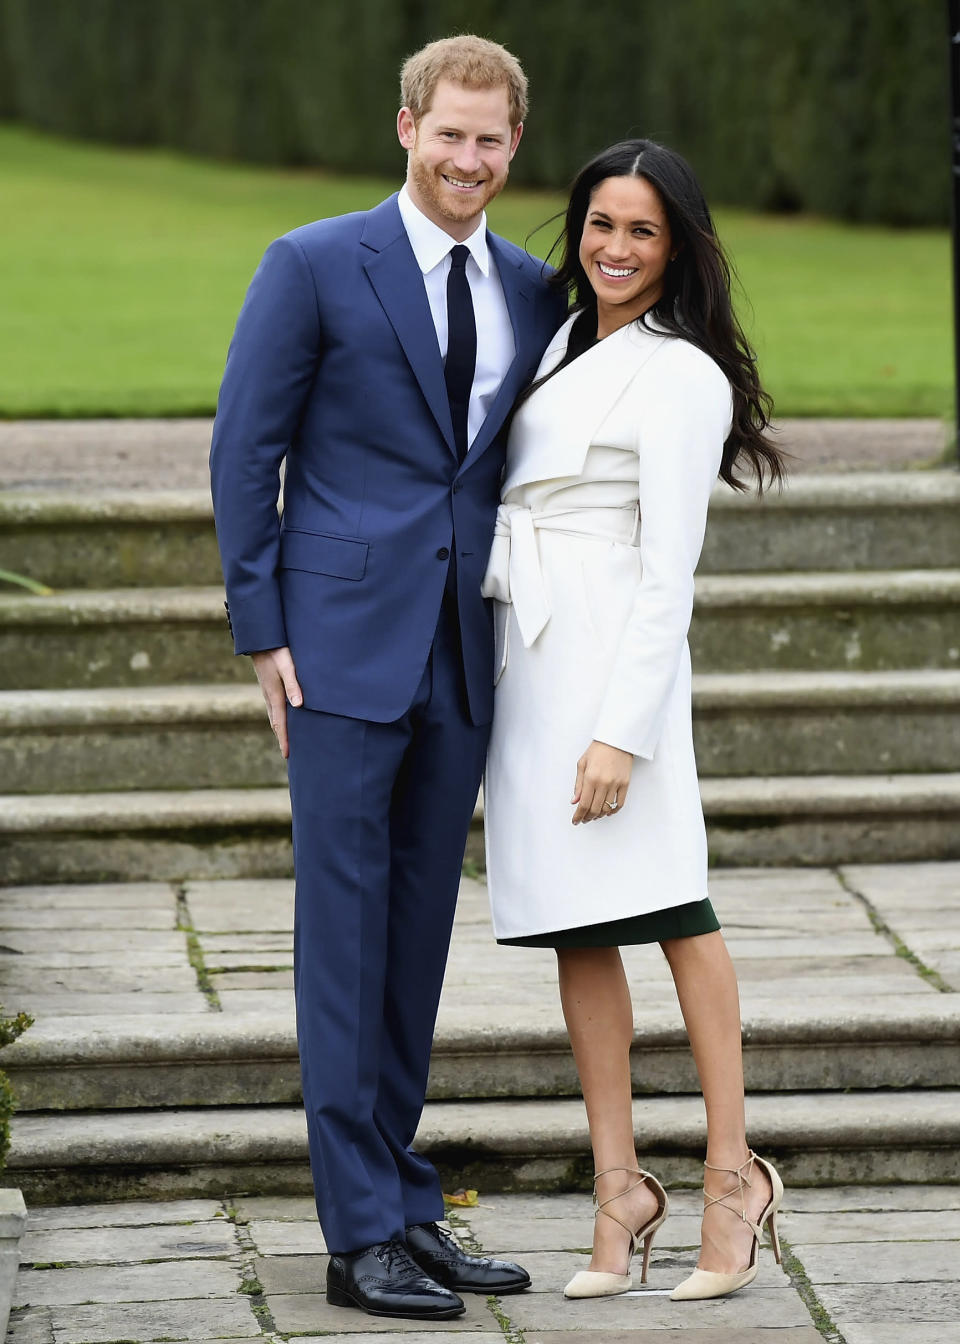 """<p>On Nov. 27, it was announced that <a rel=""""nofollow"""" href=""""https://www.yahoo.com/lifestyle/tagged/Prince-Harry/"""" data-ylk=""""slk:Prince Harry"""" class=""""link rapid-noclick-resp"""">Prince Harry</a> and <a rel=""""nofollow"""" href=""""https://www.yahoo.com/lifestyle/tagged/Meghan-Markle/"""" data-ylk=""""slk:Meghan Markle"""" class=""""link rapid-noclick-resp"""">Meghan Markle</a> are engaged. The royal was asked by reporters during the photo op whether the proposal was romantic. """"Of course it was,"""" he <a rel=""""nofollow"""" href=""""https://www.yahoo.com/lifestyle/britains-prince-harry-says-thrilled-engagement-u-actress-141429669.html"""" data-ylk=""""slk:replied;outcm:mb_qualified_link;_E:mb_qualified_link;ct:story;"""" class=""""link rapid-noclick-resp yahoo-link"""">replied</a>. (Photo: Getty Images) </p>"""